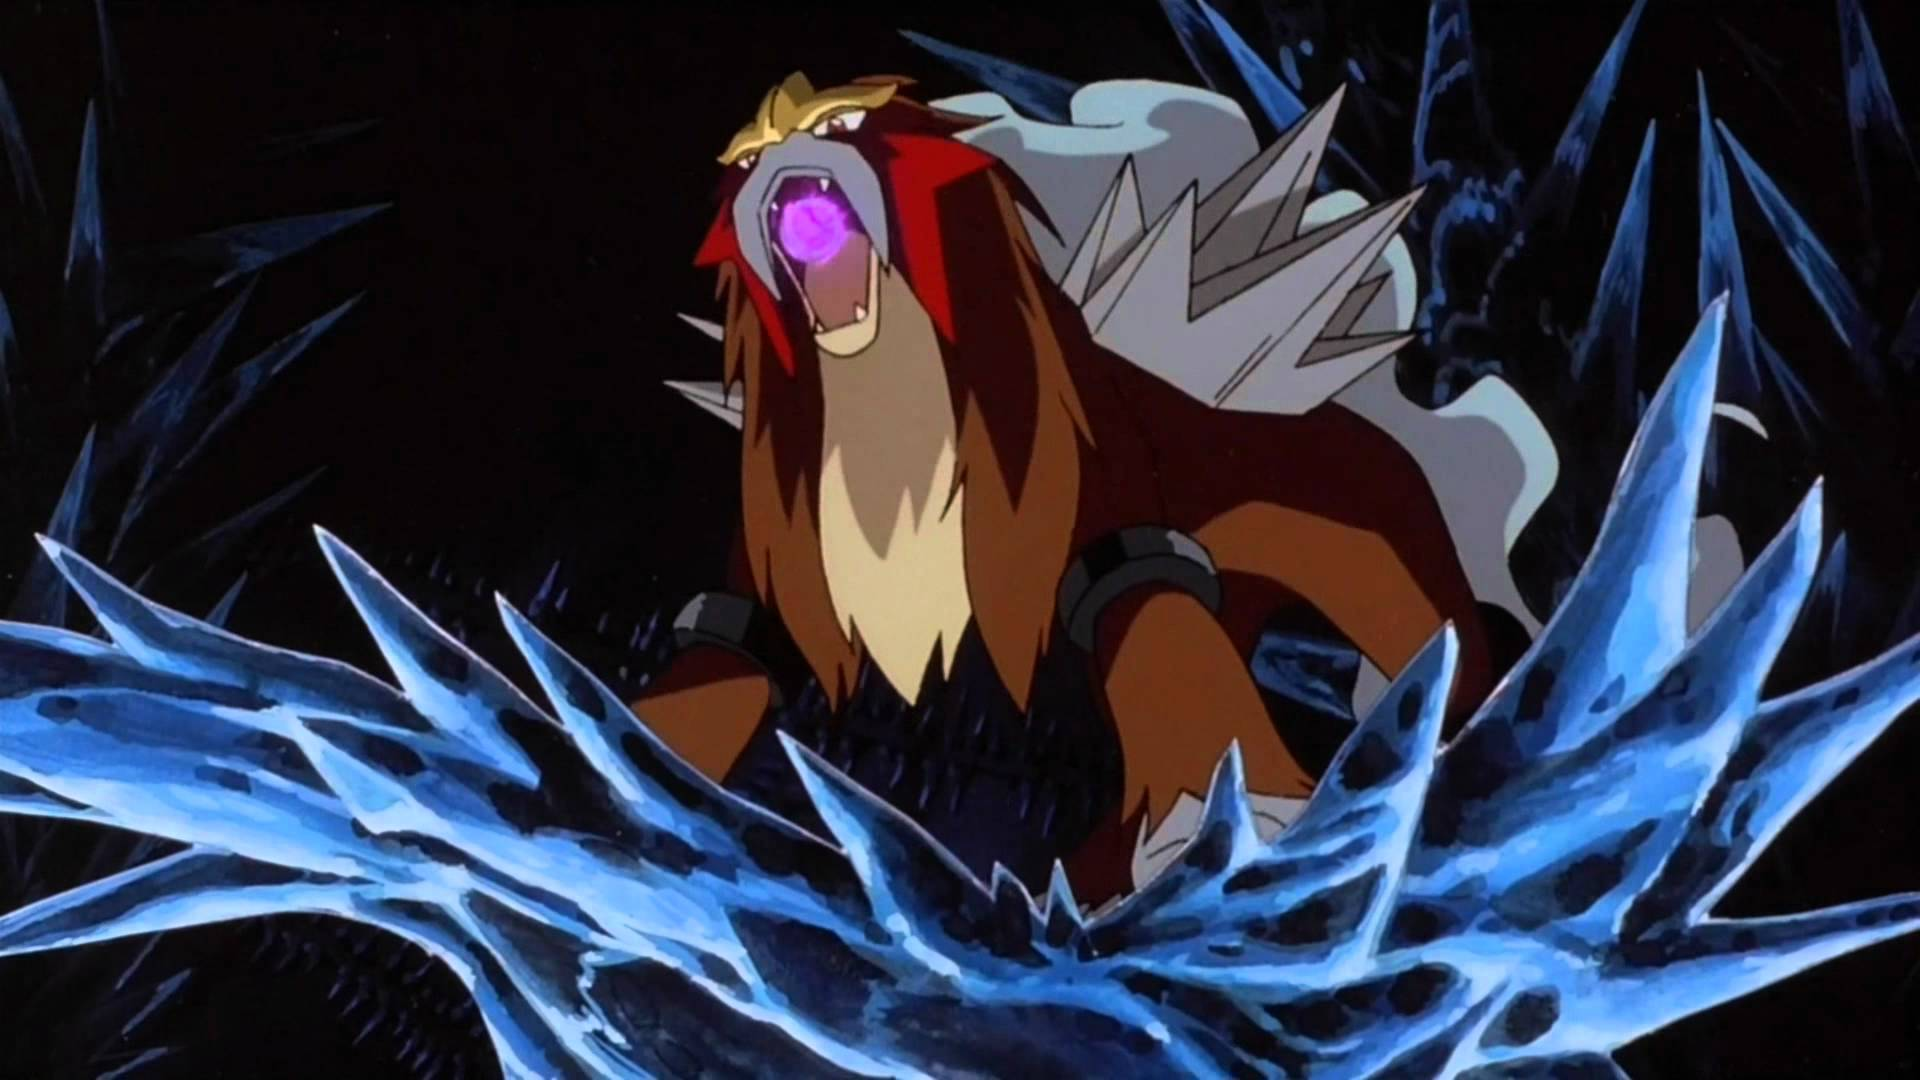 Entei Third Movie - Anime Warfare Photo (36786945) - Fanpop